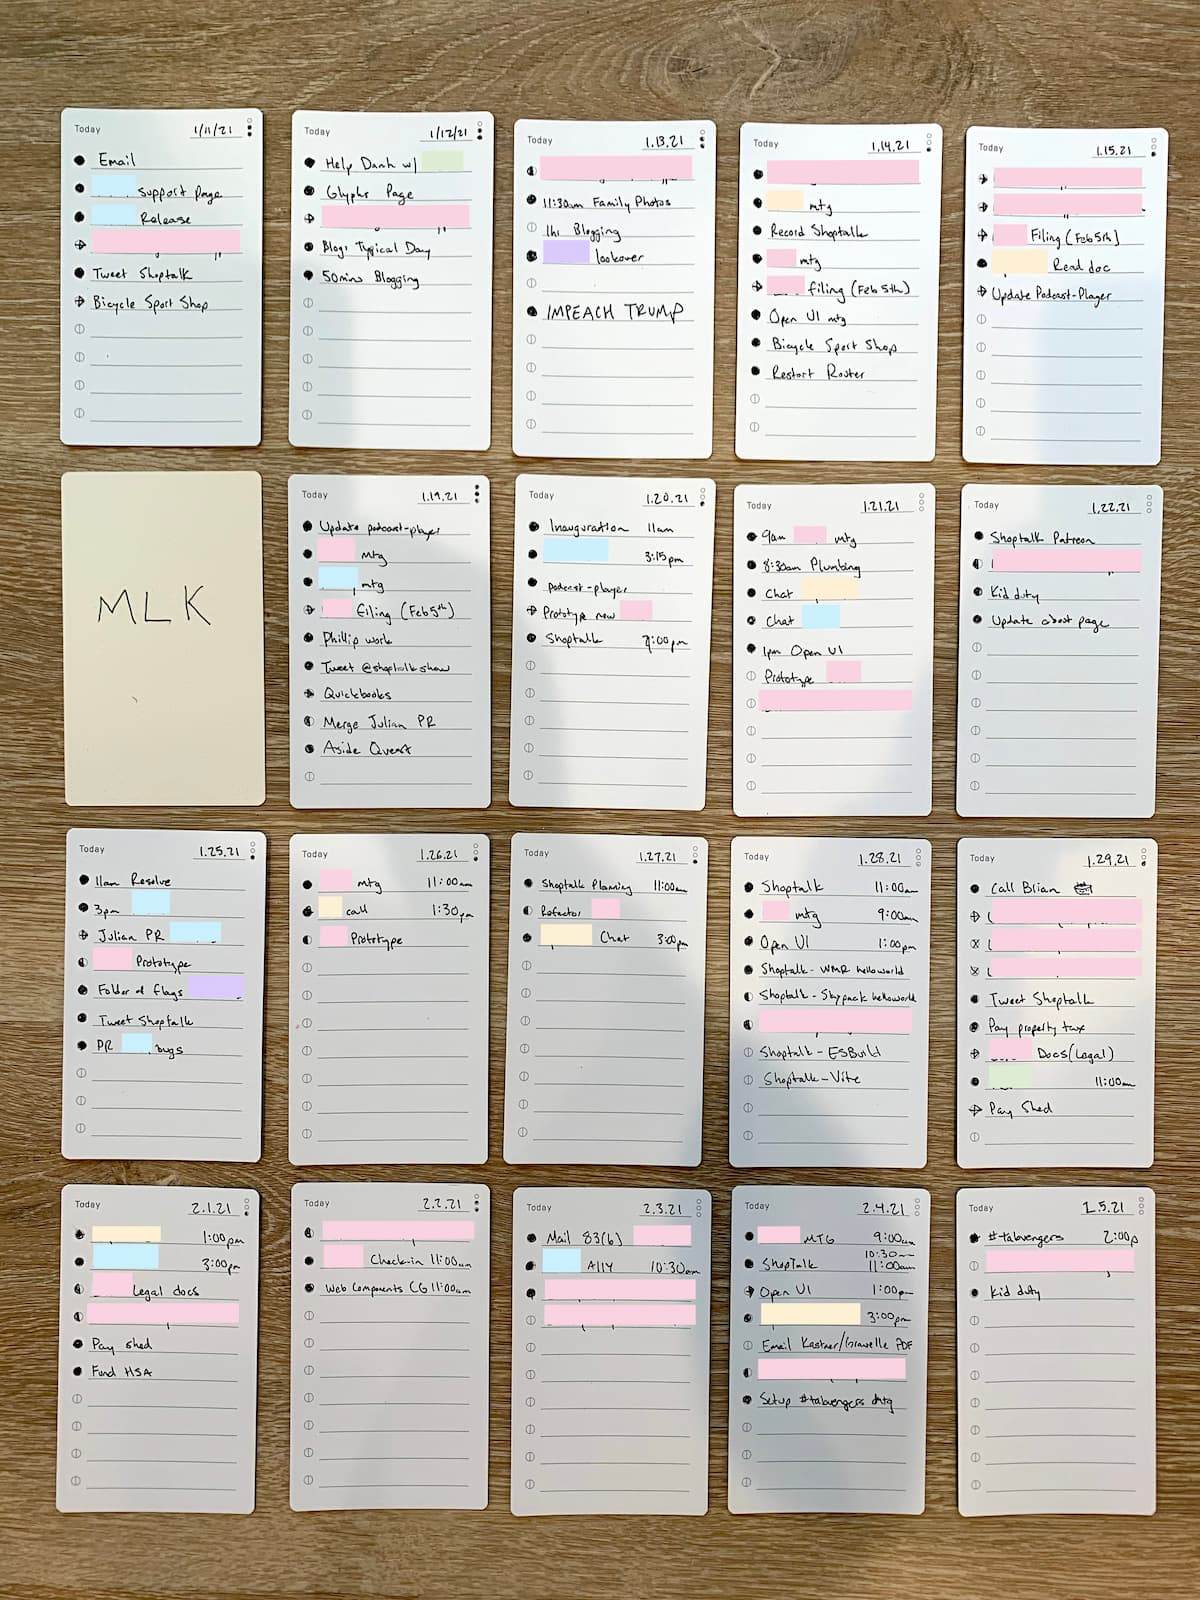 Daily task cards arrayed in a 5x4 grid. Each card has an average of 3~5 tasks and projects are color coded.